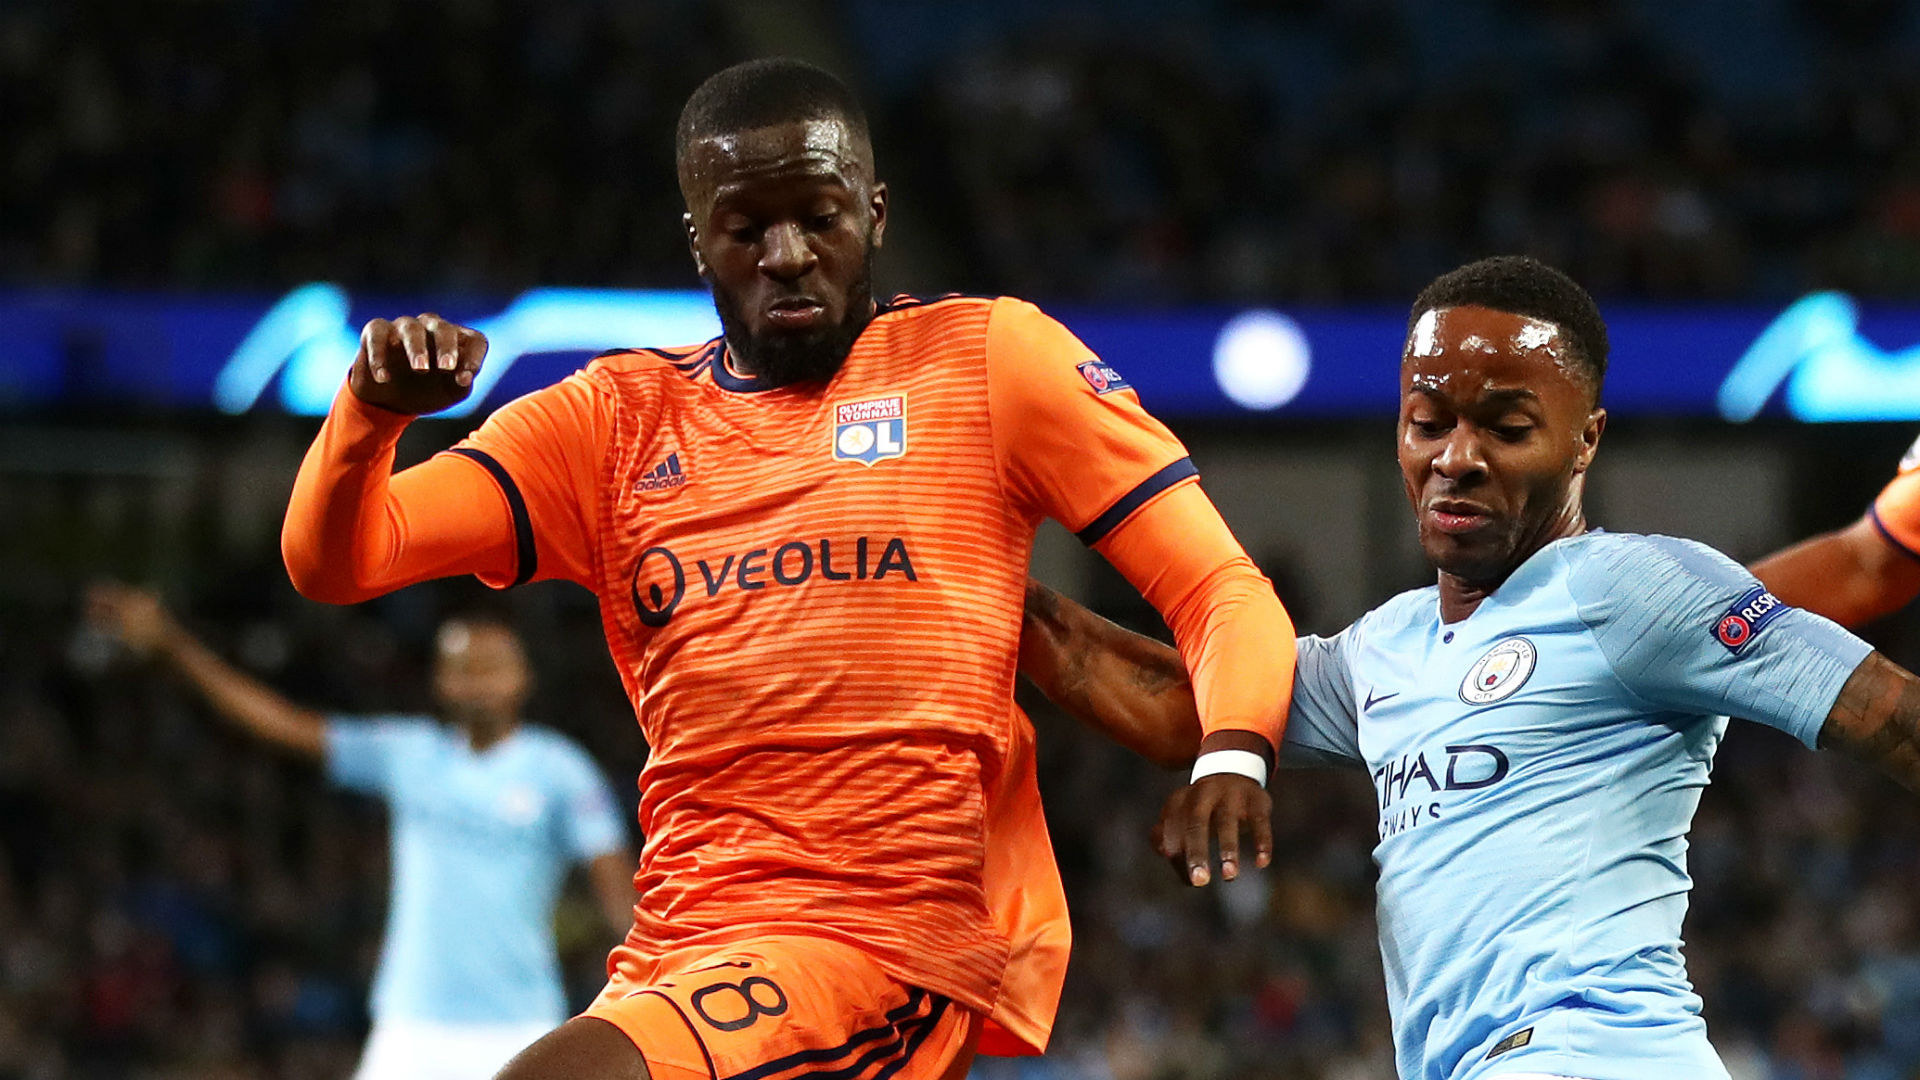 Fact or fiction? Breaking down De Jong, Ndombele and Man City's transfer targets - Goal India - transfer, targets, ndombele, india, fiction, breaking